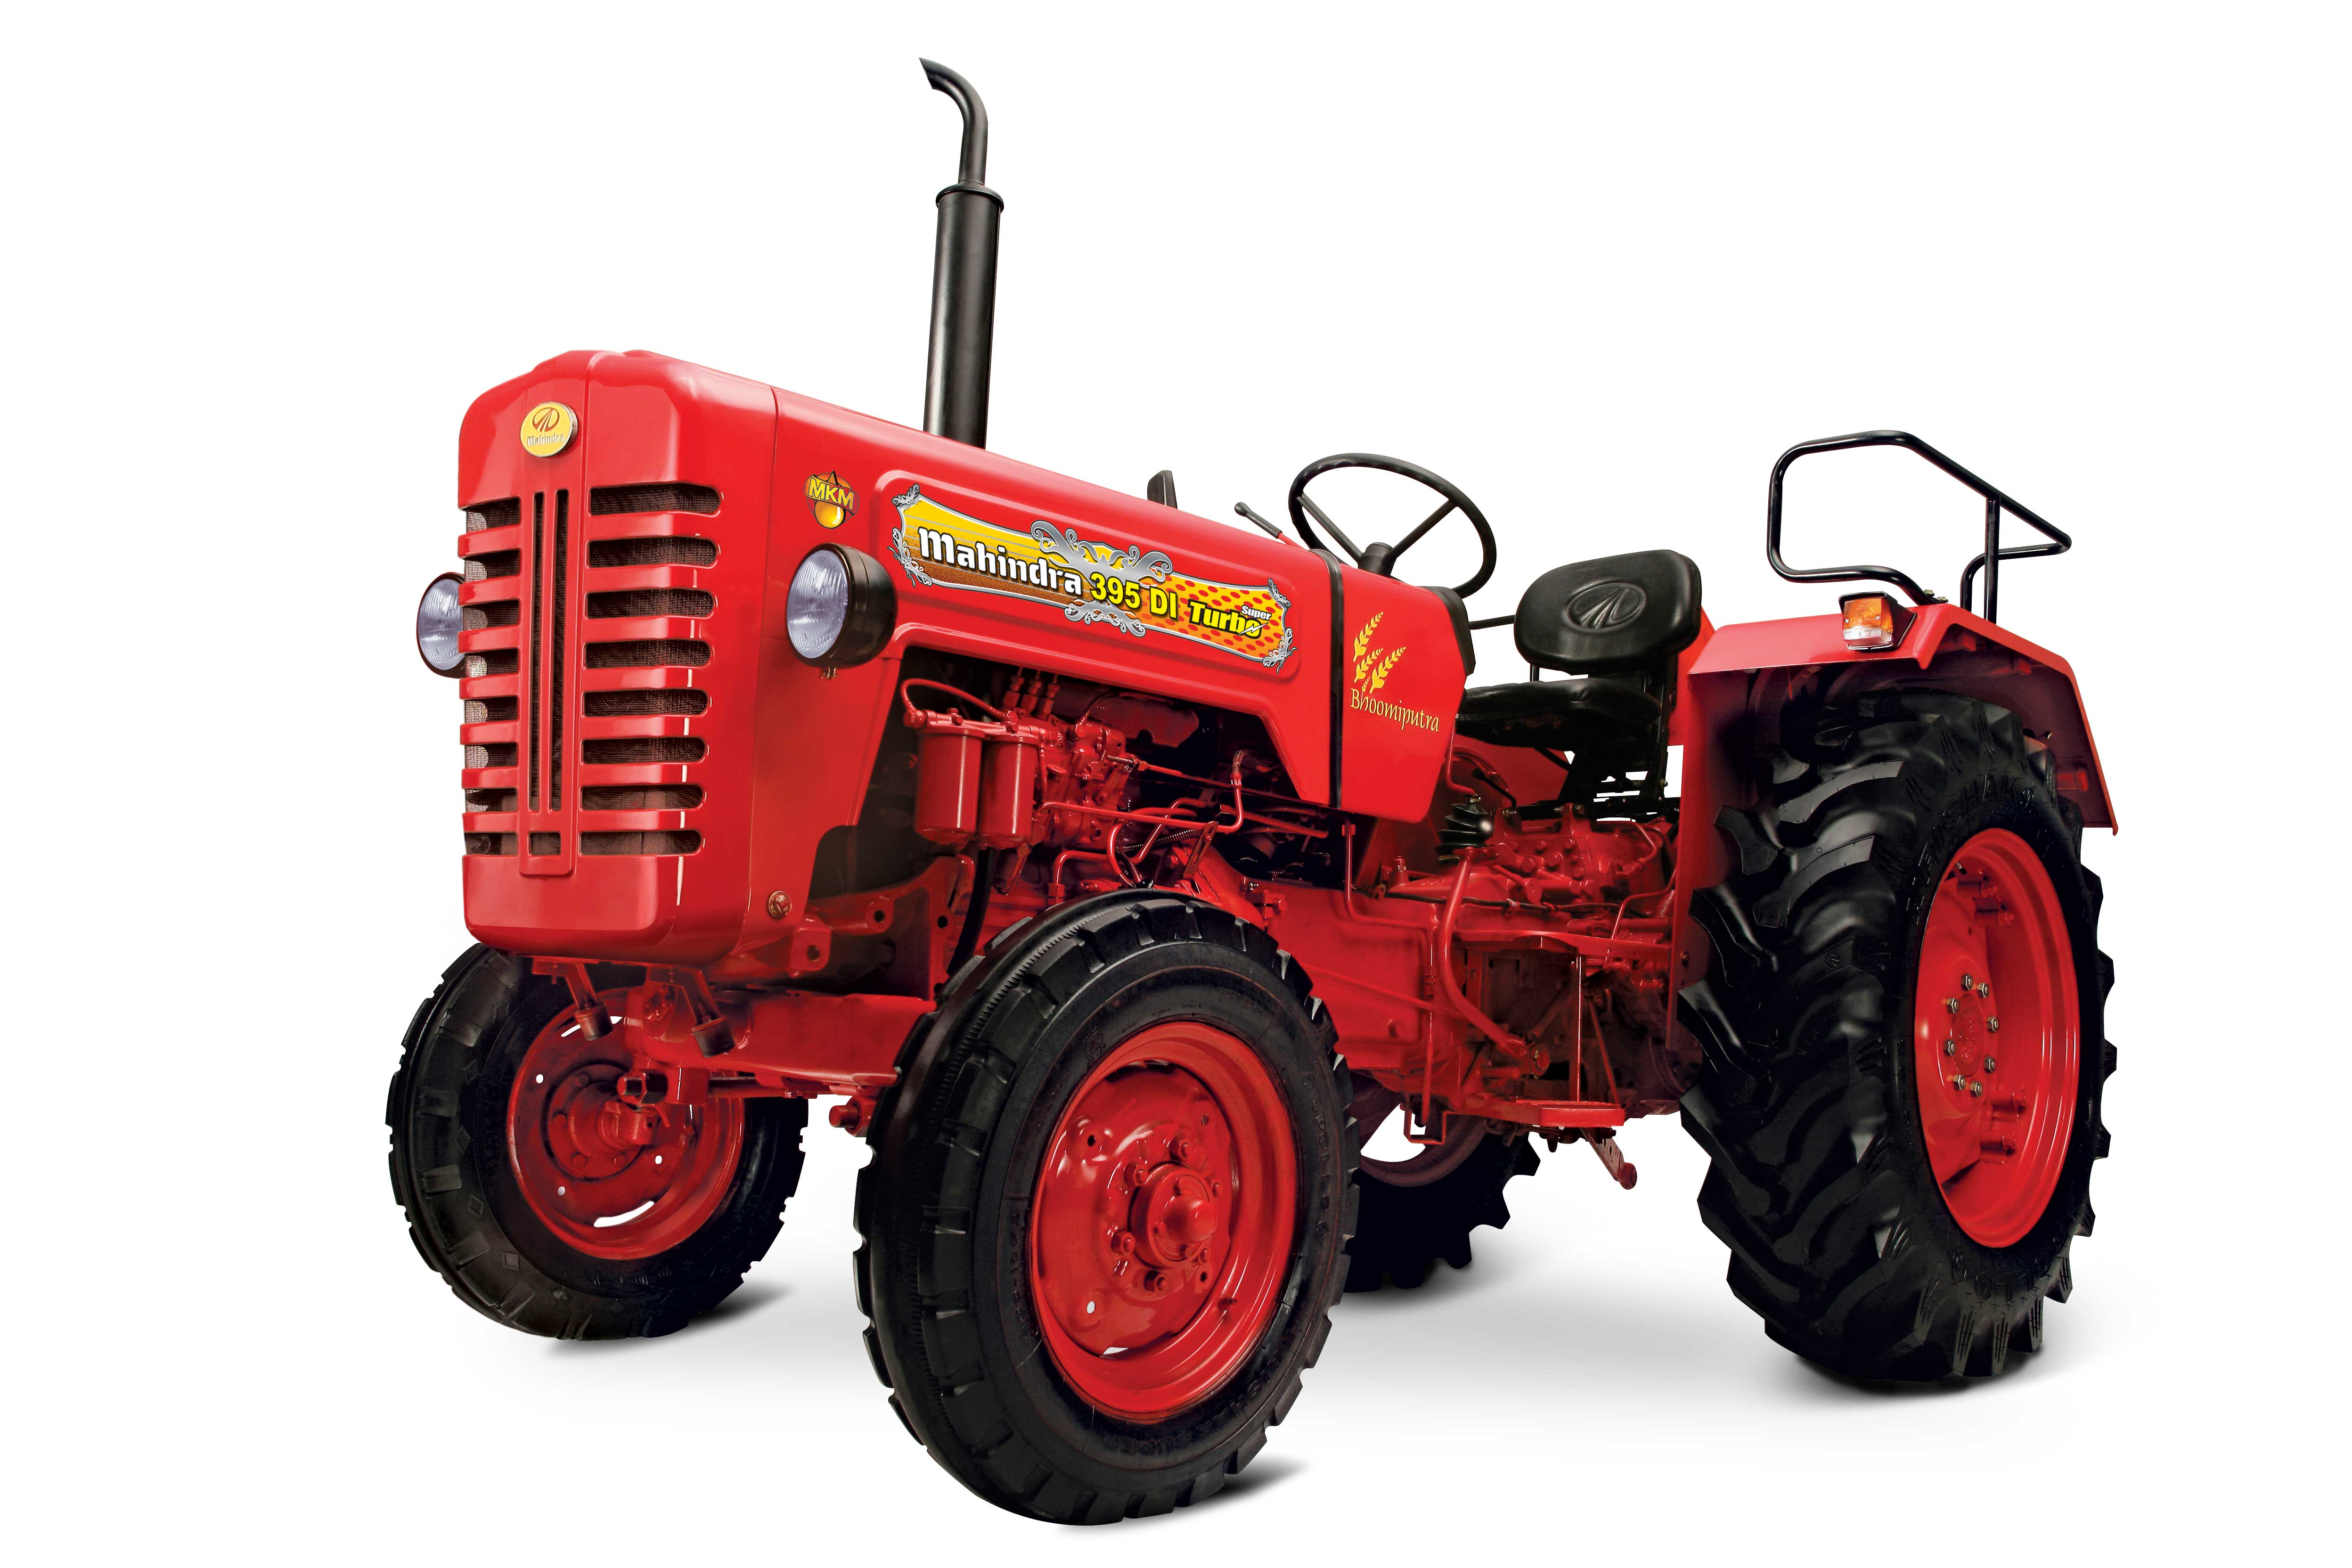 tractor wallpapers high quality download free